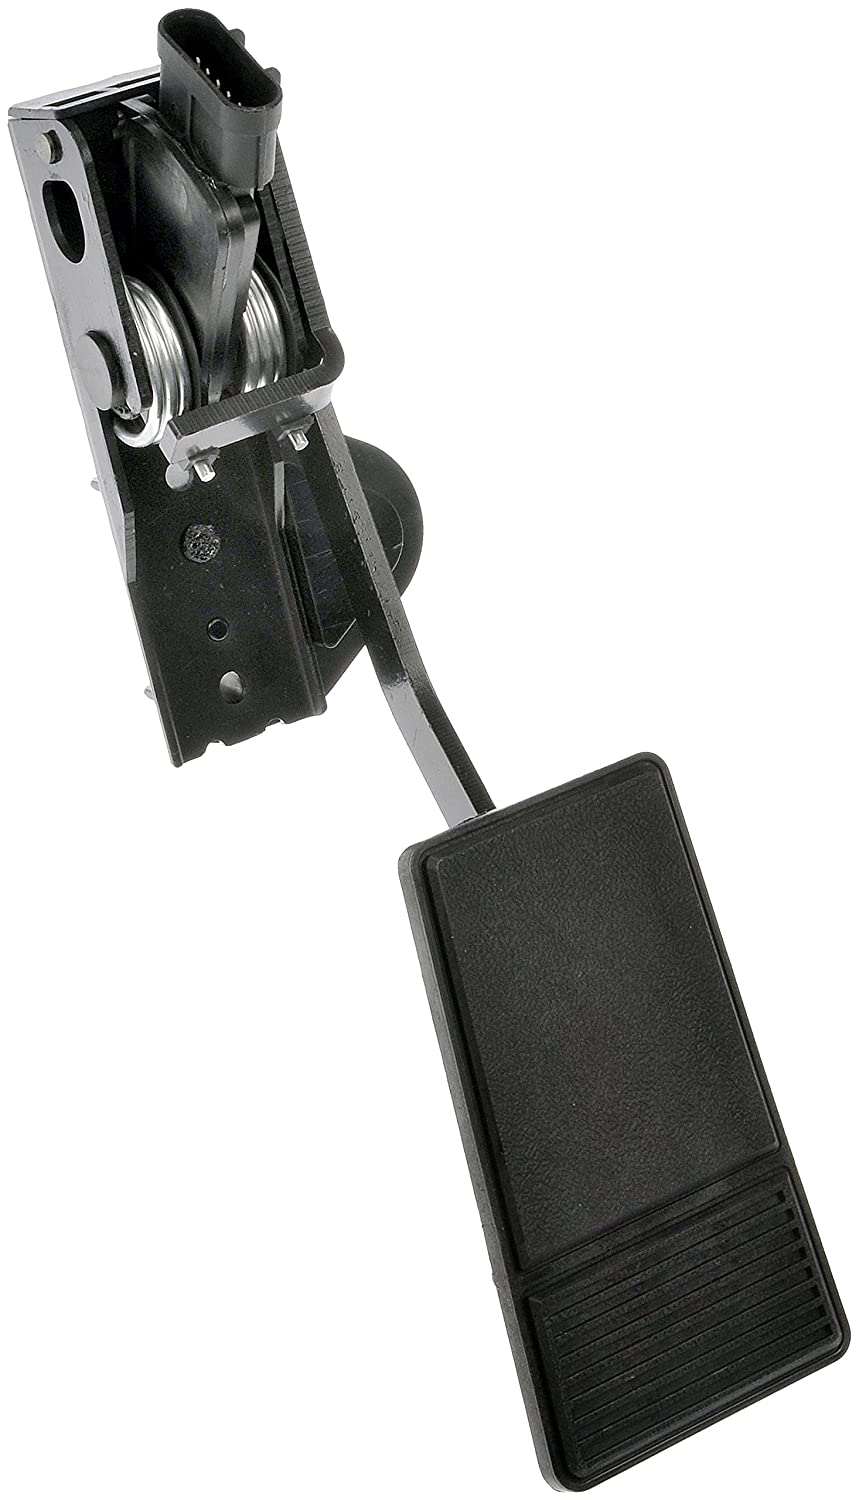 Dorman OE Solutions 699-104 Accelerator Pedal Assembly